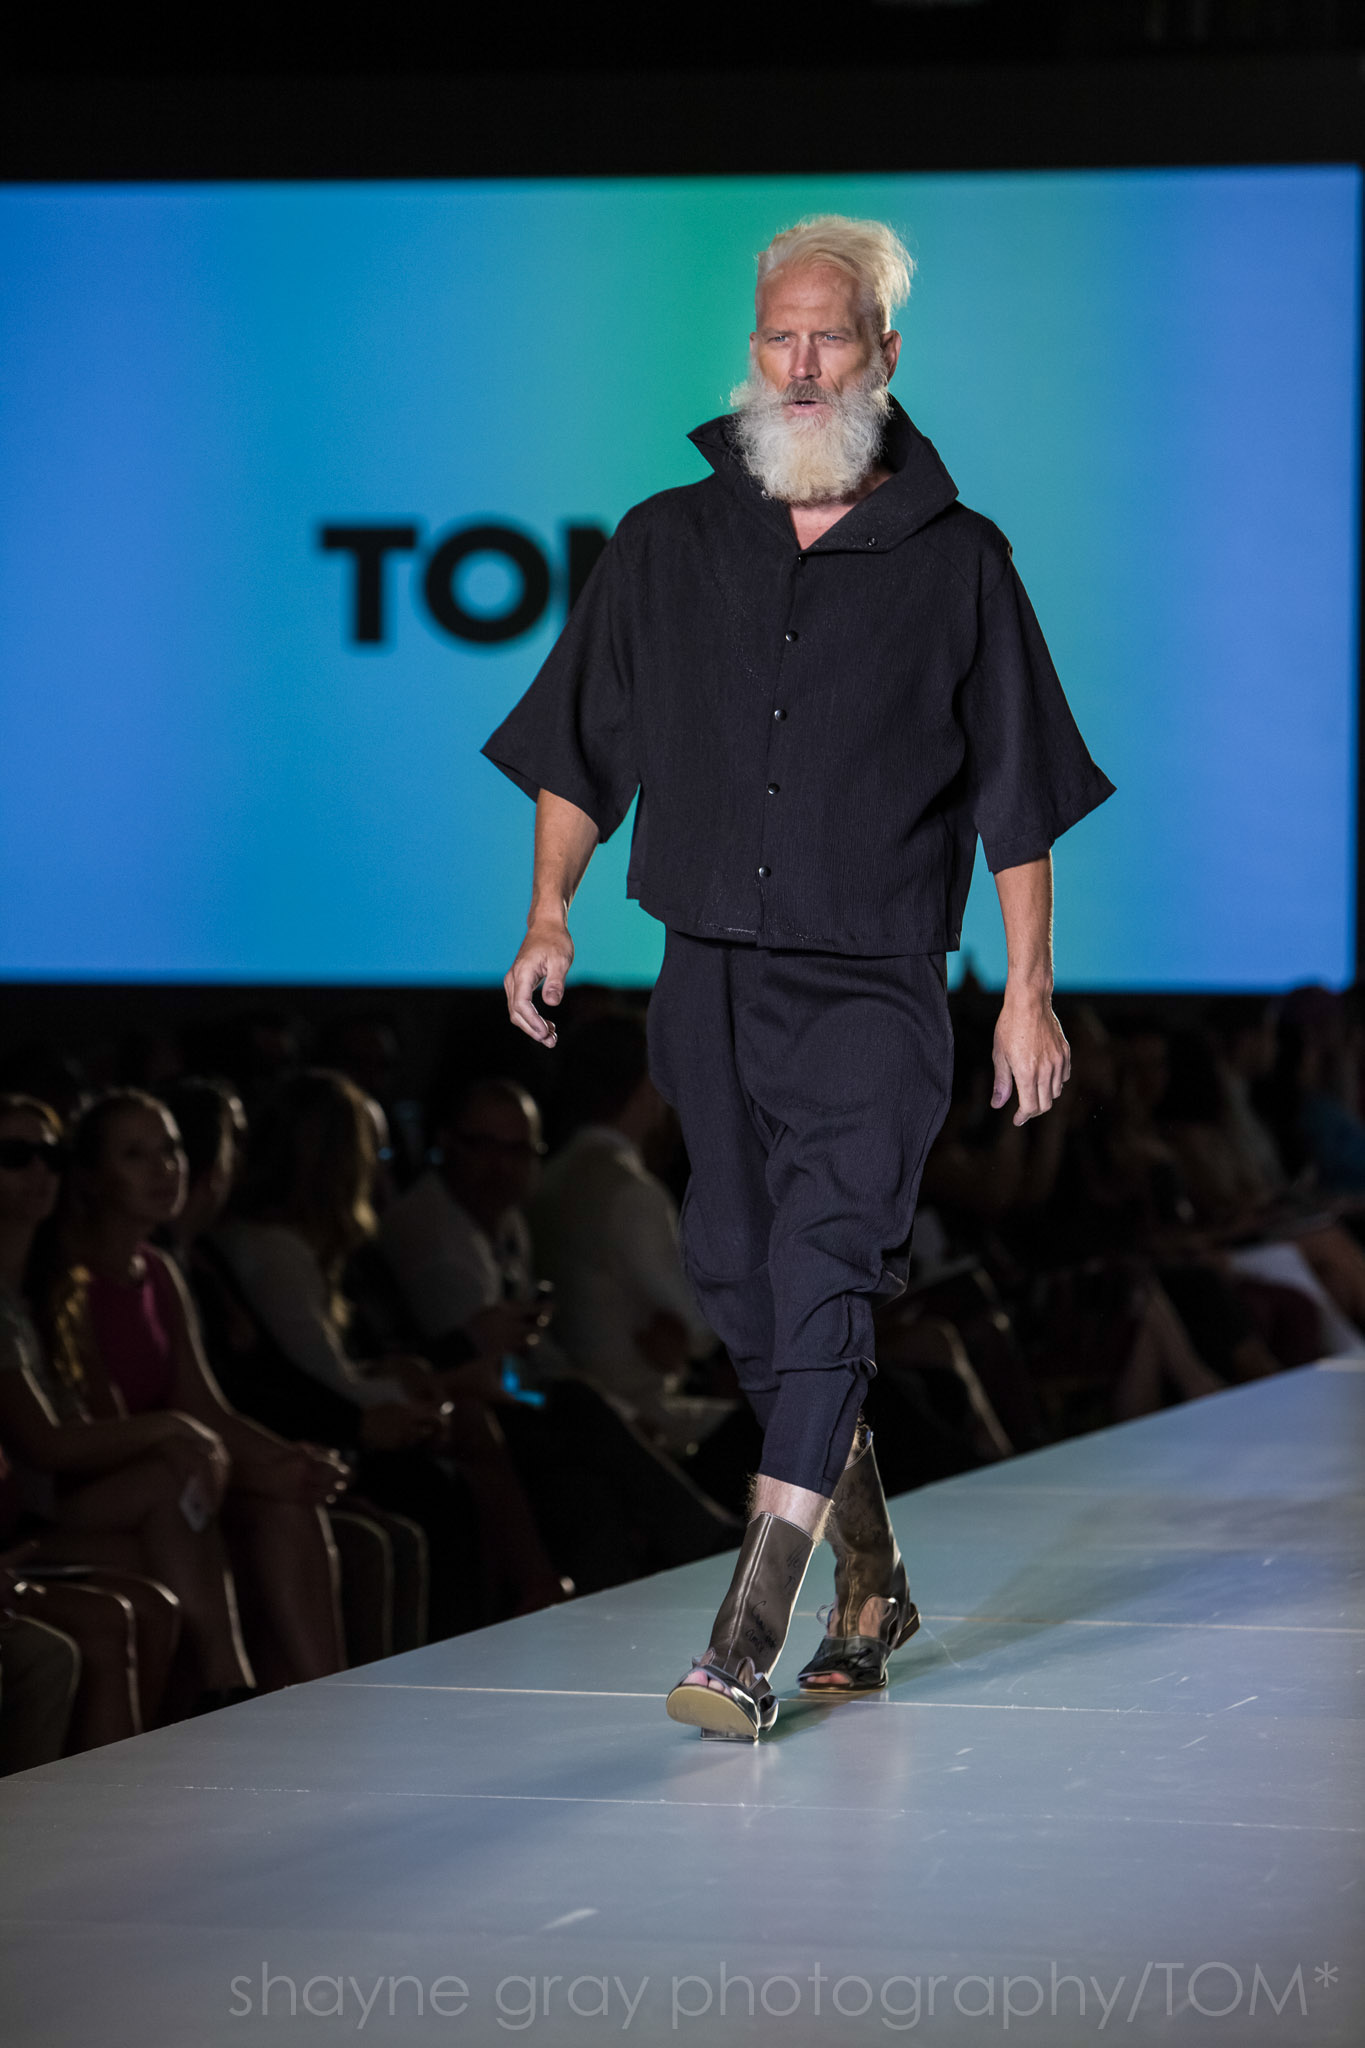 Shayne-Gray-Toronto-men's-fashion_week-TOM-jose-duran-7720.jpg